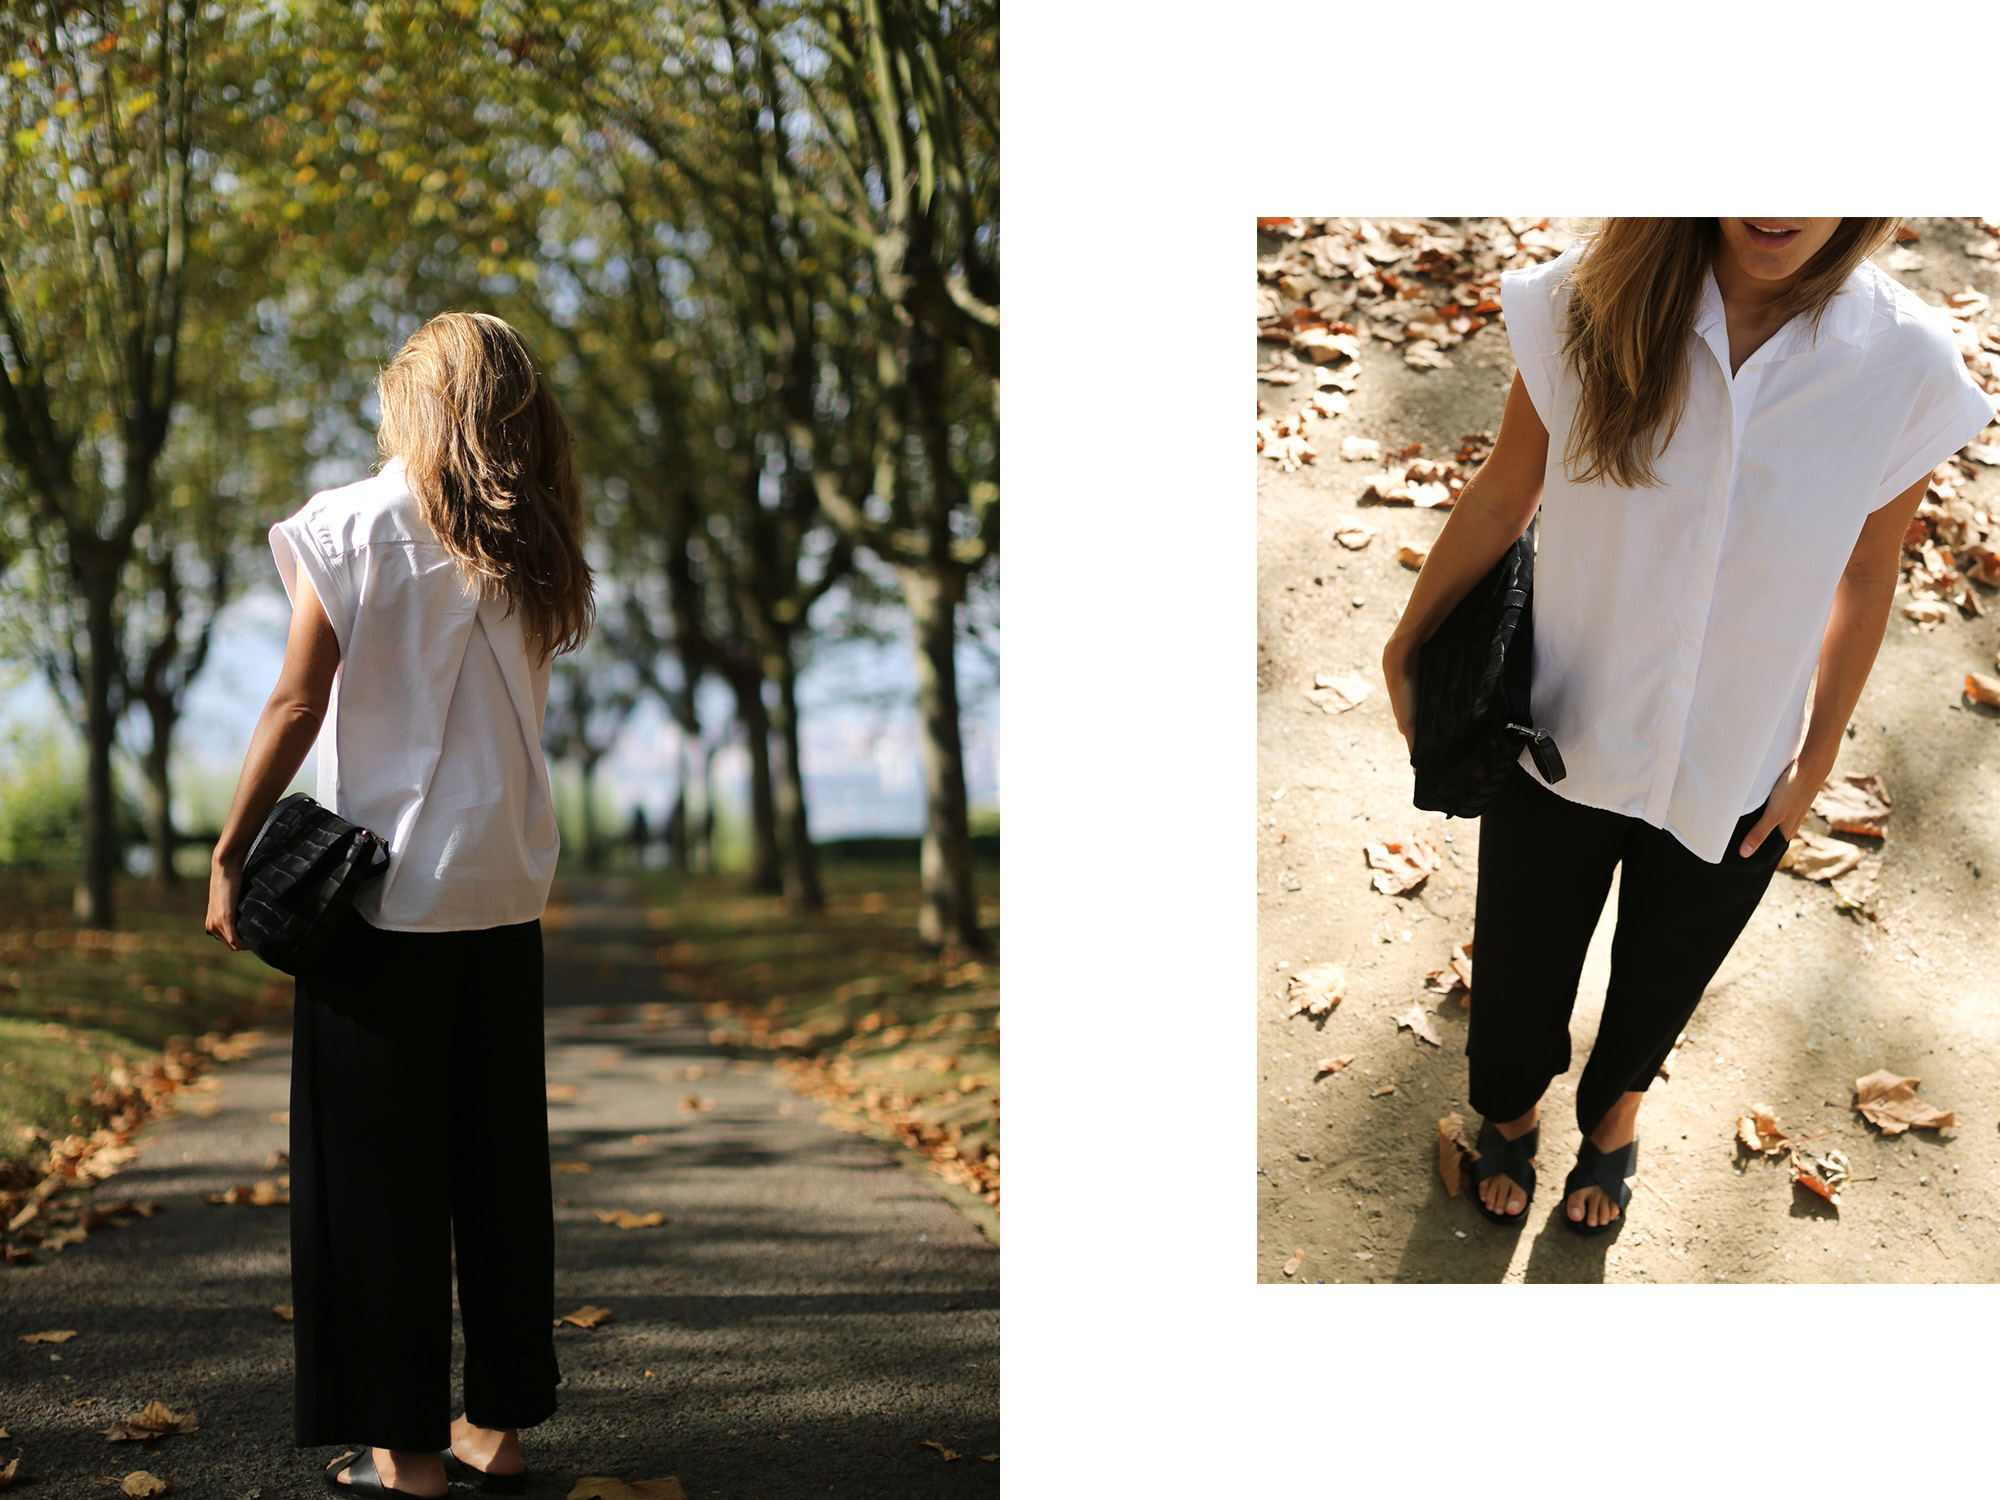 Clochet-streetstyle-zara-white-structured-shirt-culottes-everie-cph-14